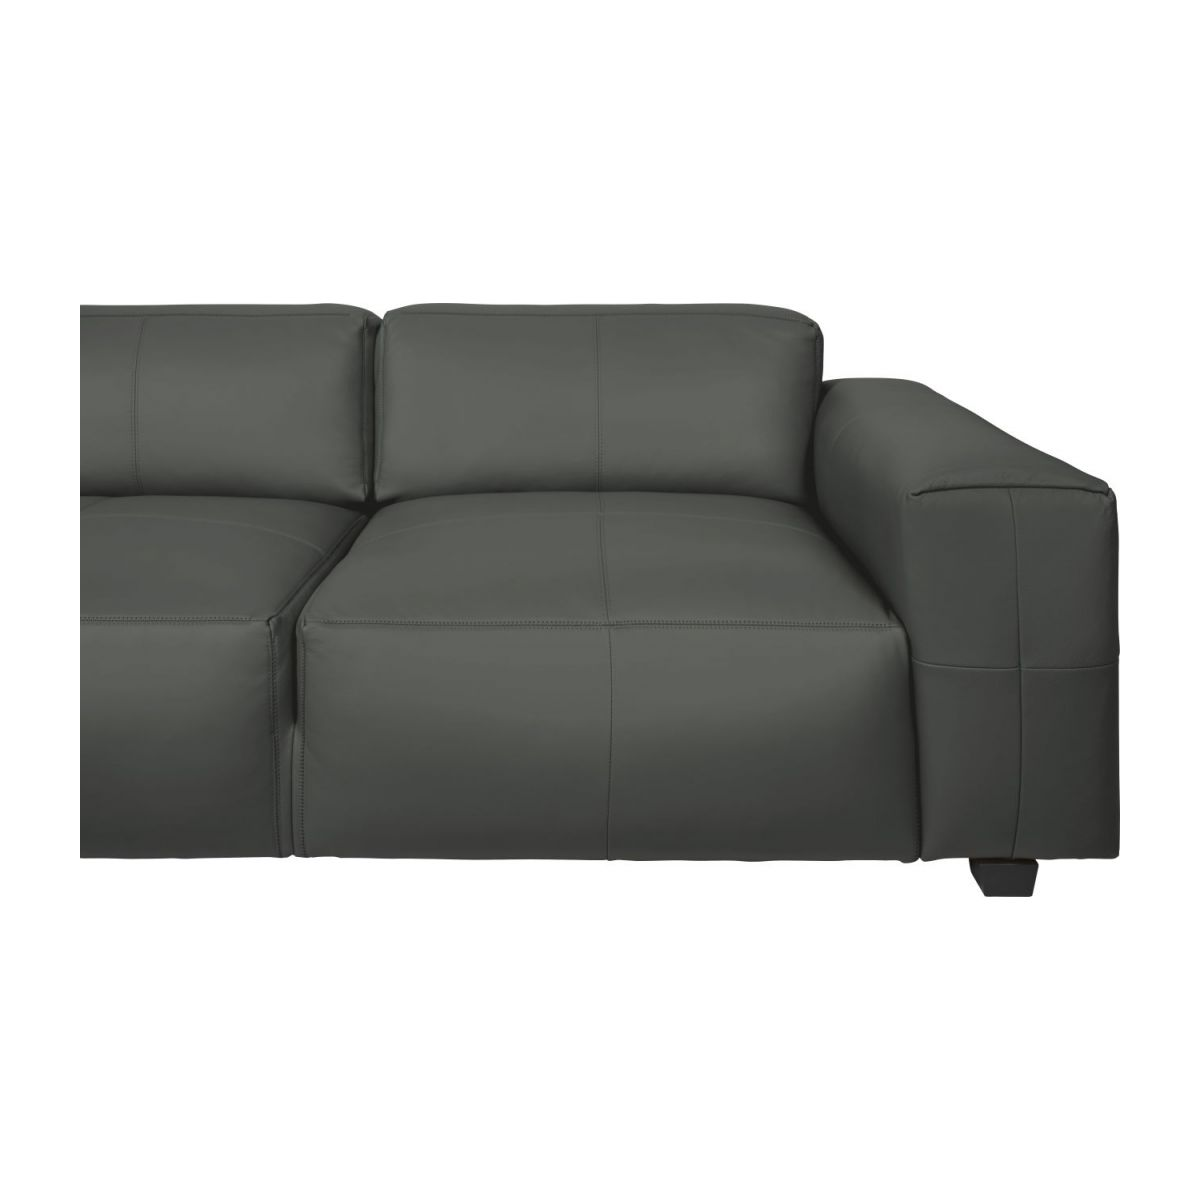 4 seater sofa in Savoy semi-aniline leather, grey n°7